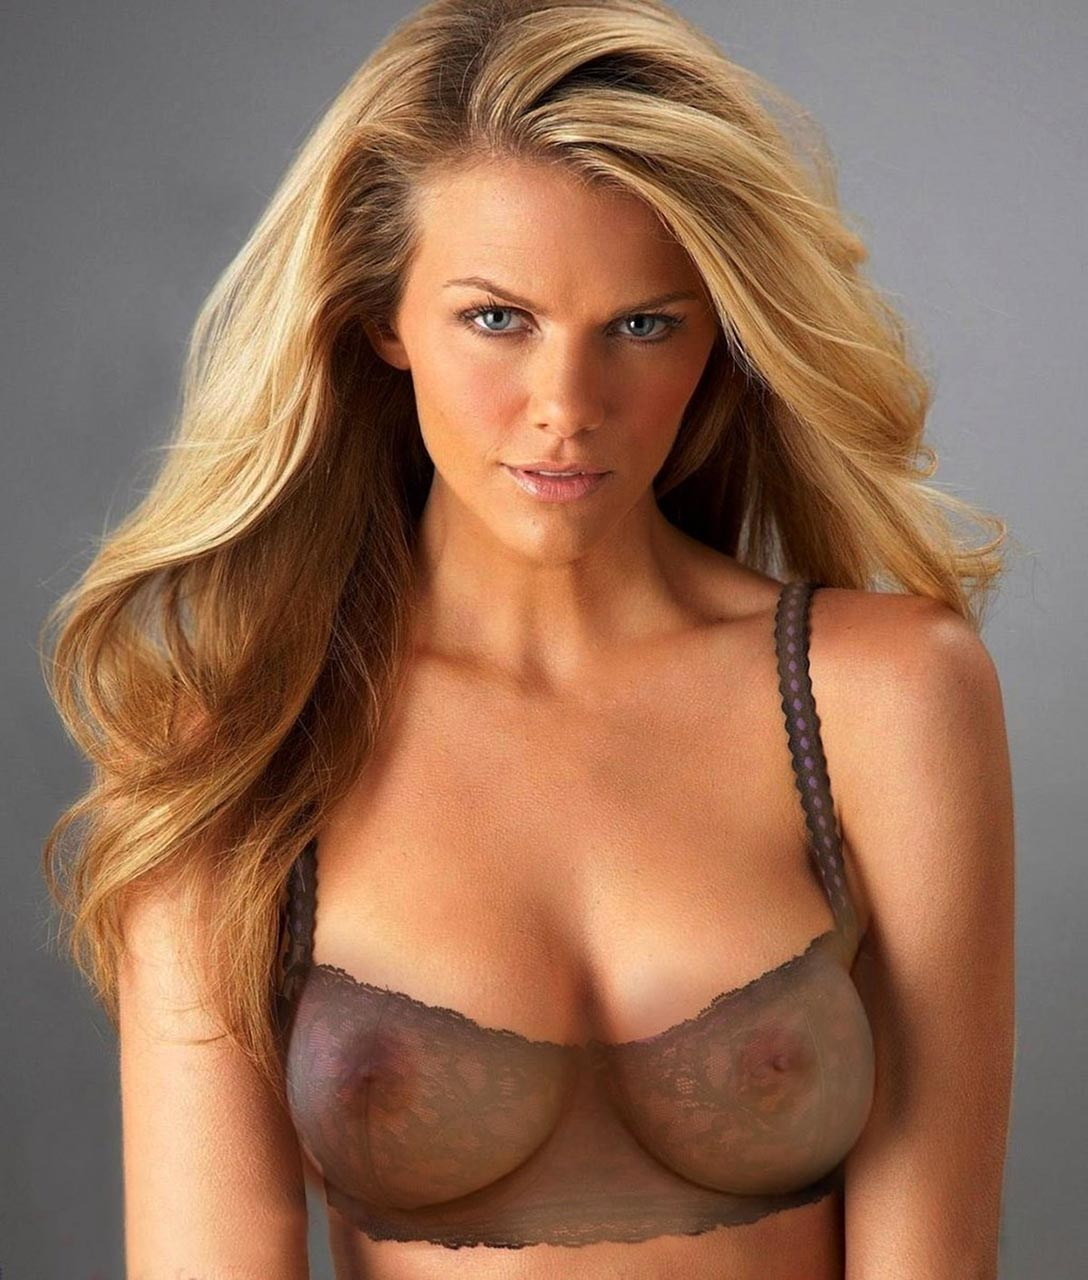 Brooklyn Decker Nude Photos Videos